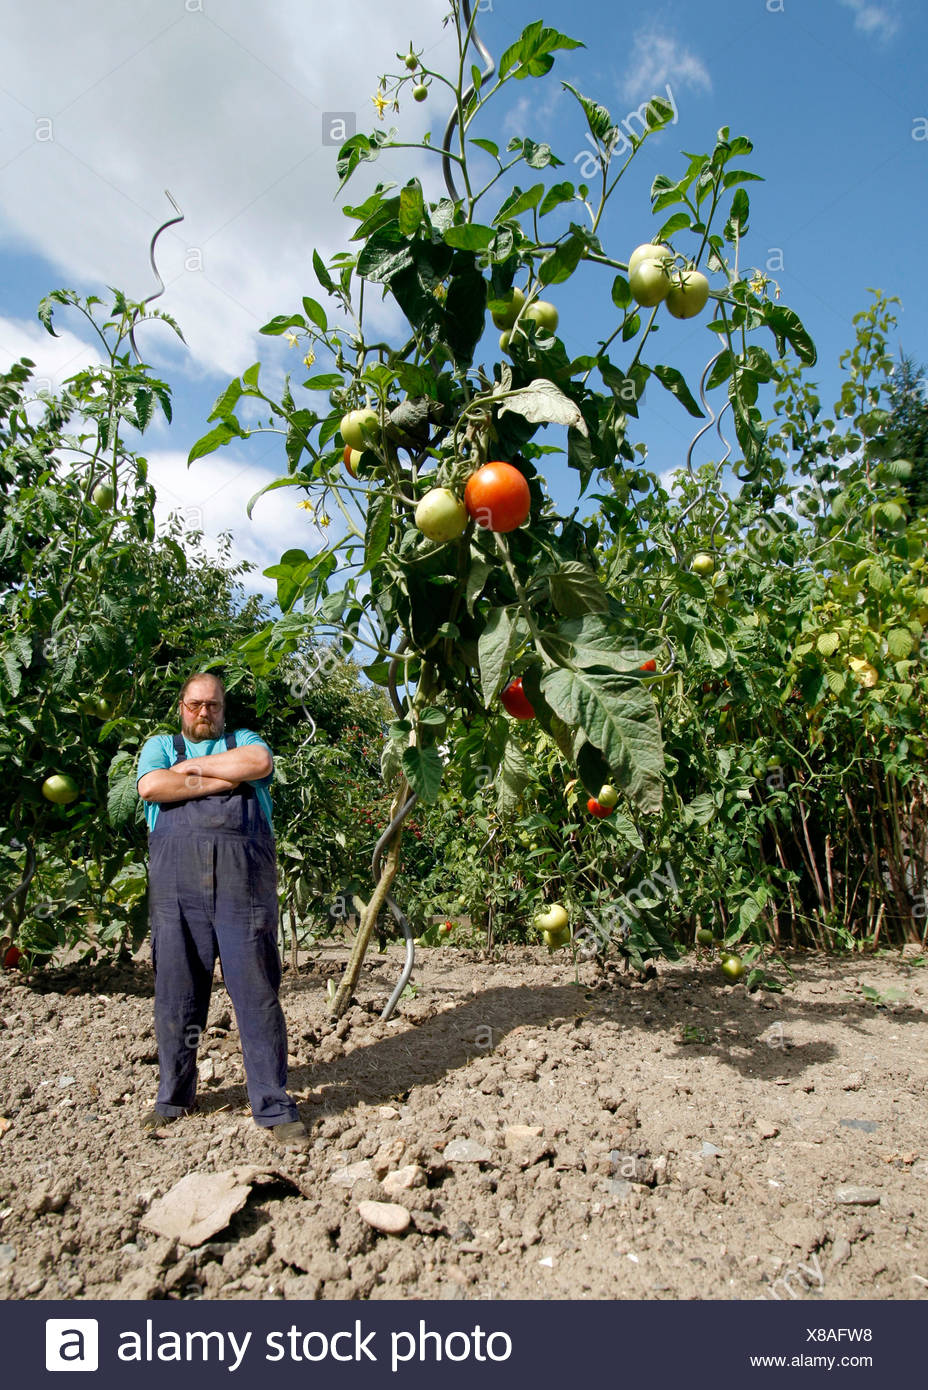 Farmer standing beside an oversized tomato plant, genetically modified food Stock Photo